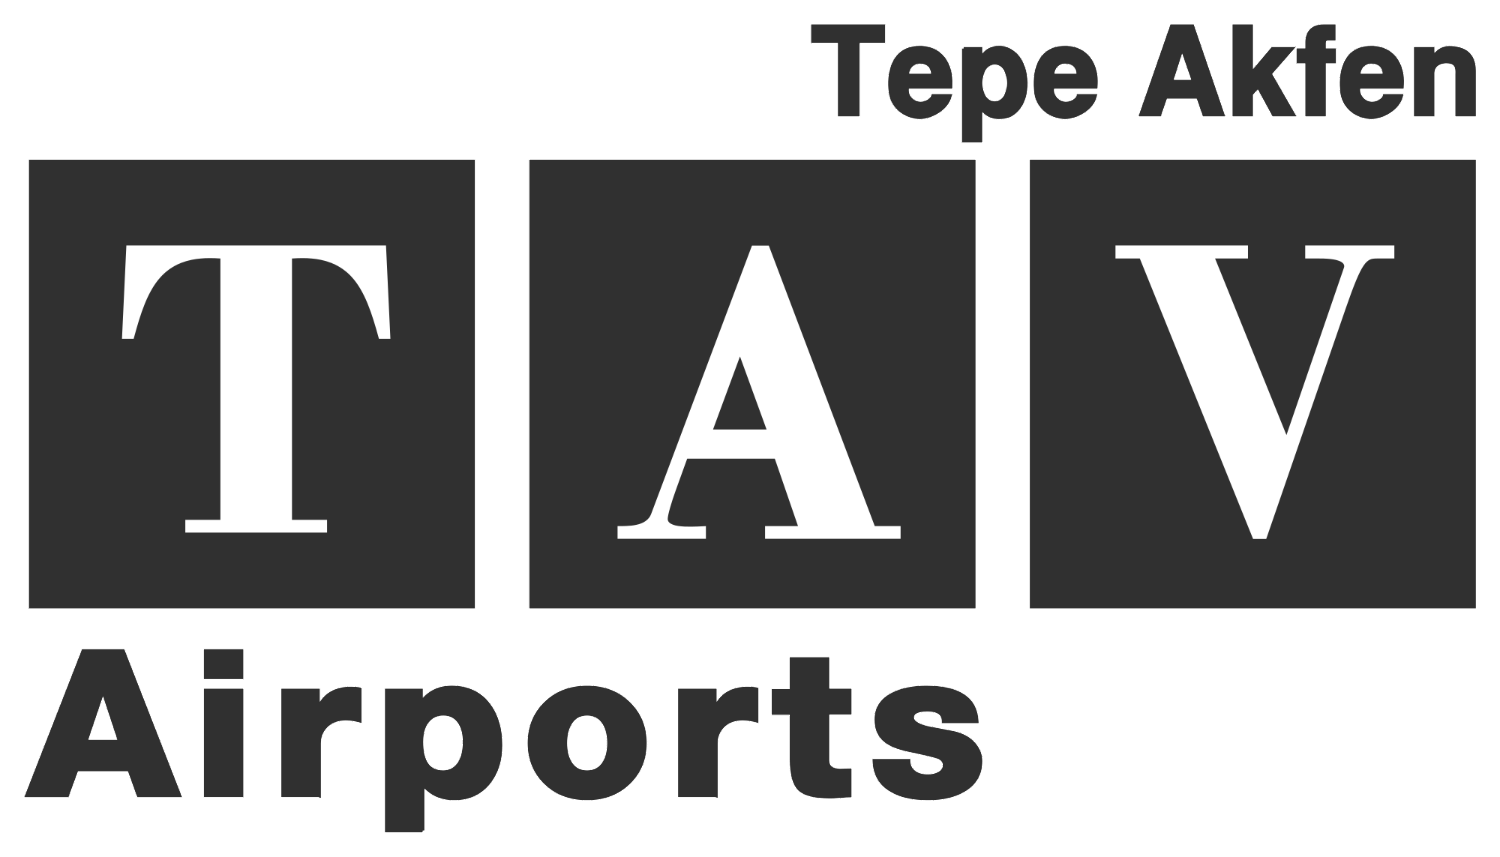 TAV_Airports_logo.svg_edited